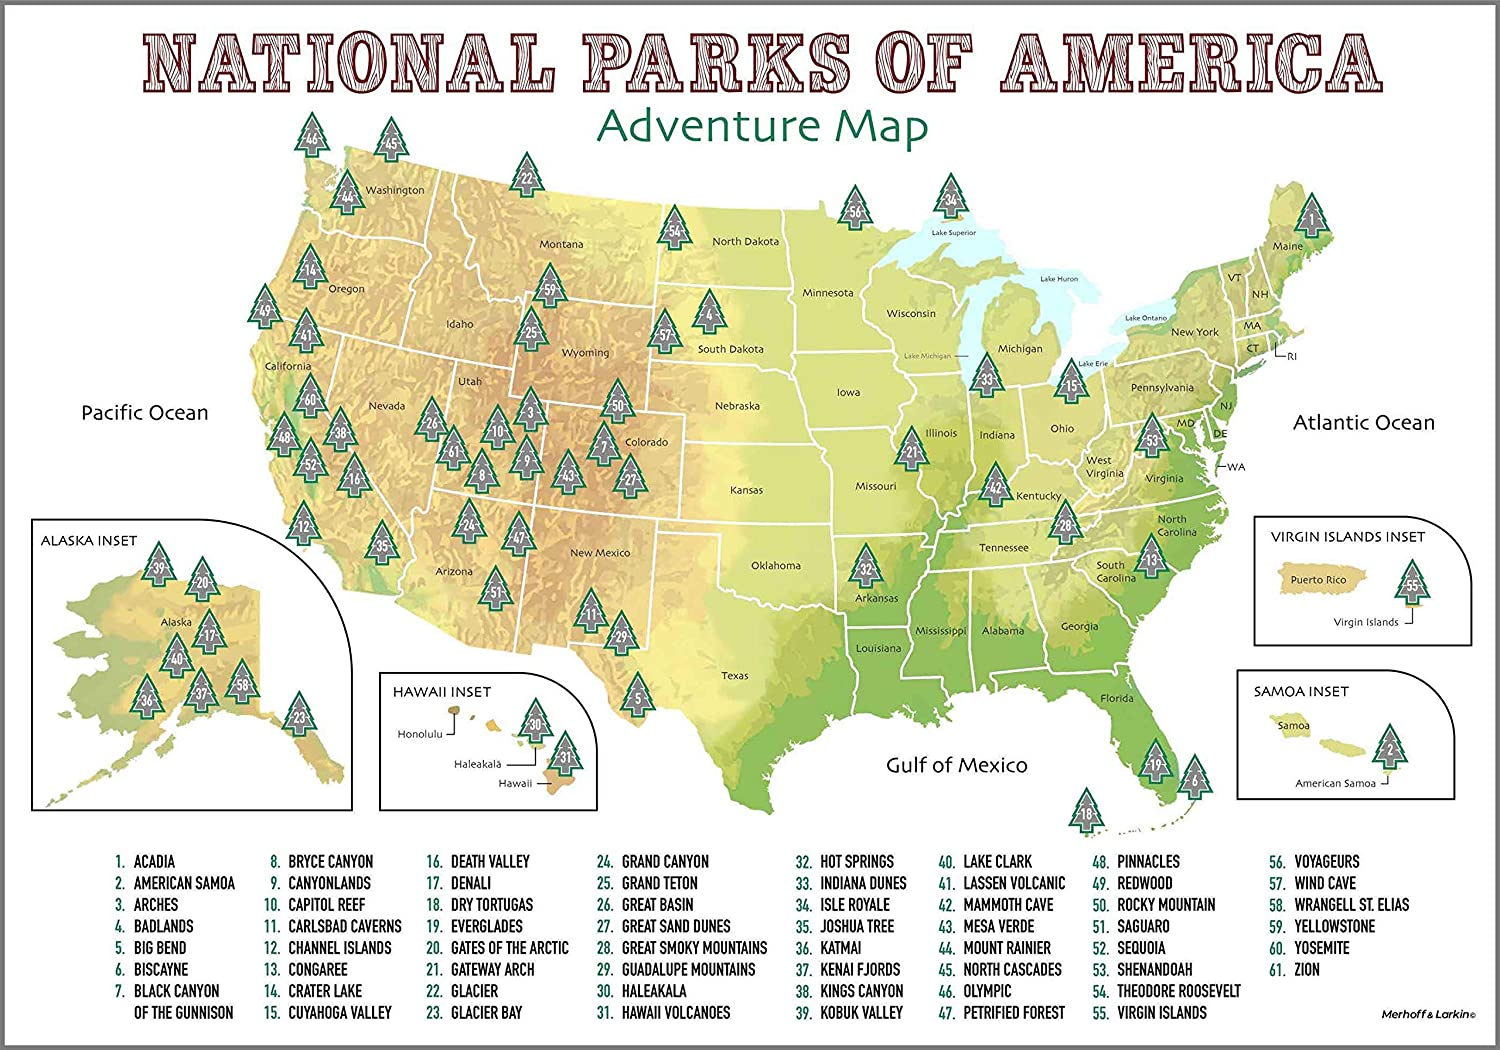 National Parks In Usa Map Amazon.com: USA National Parks Scratch Off Poster | Geographic Map